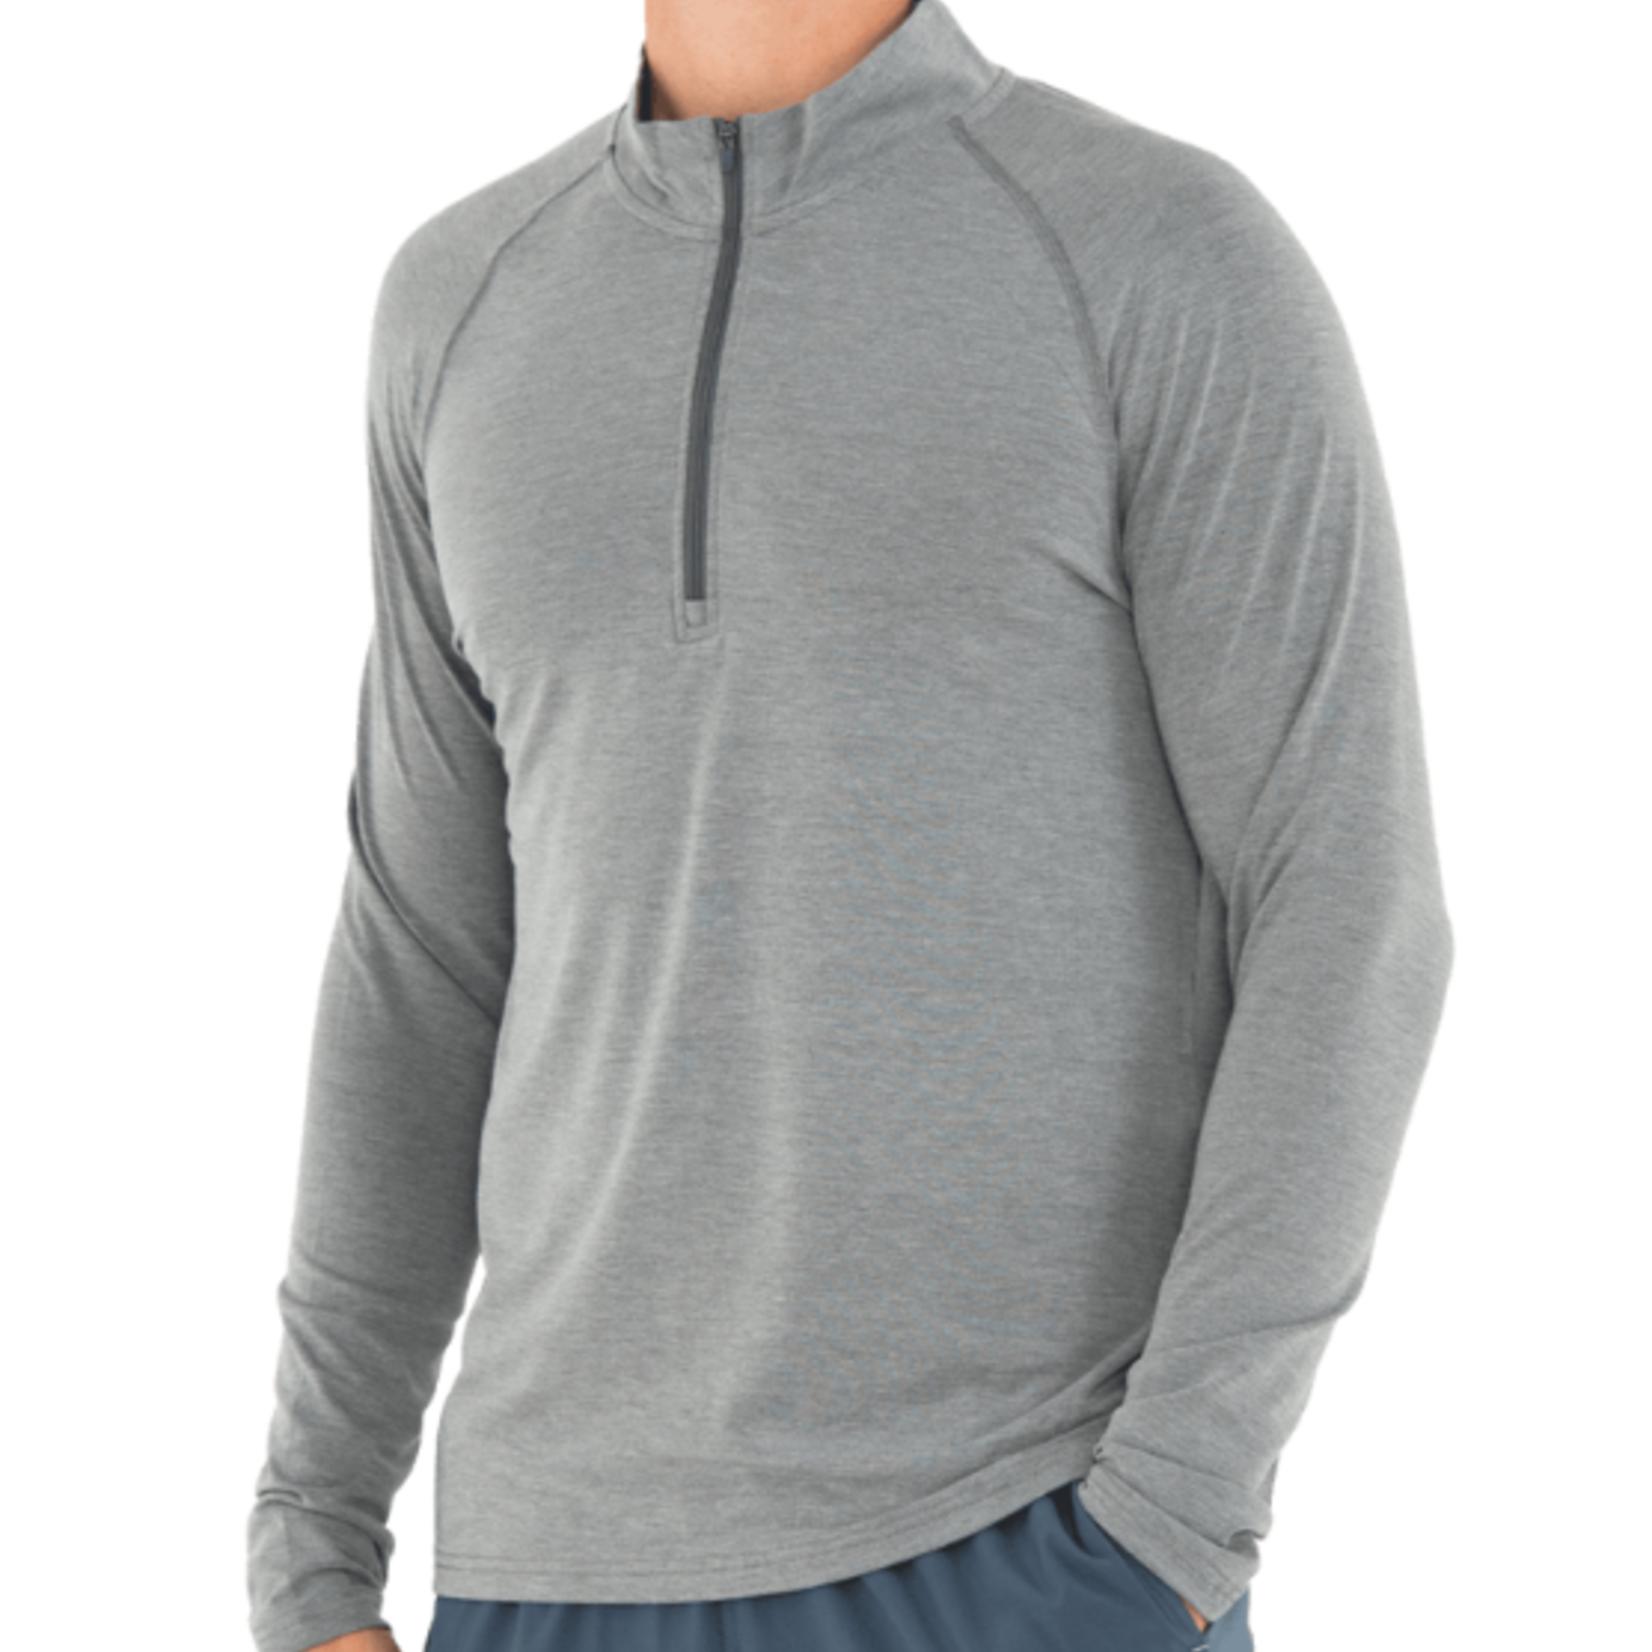 Free Fly Free Fly M's Bamboo Flex Quarter Zip